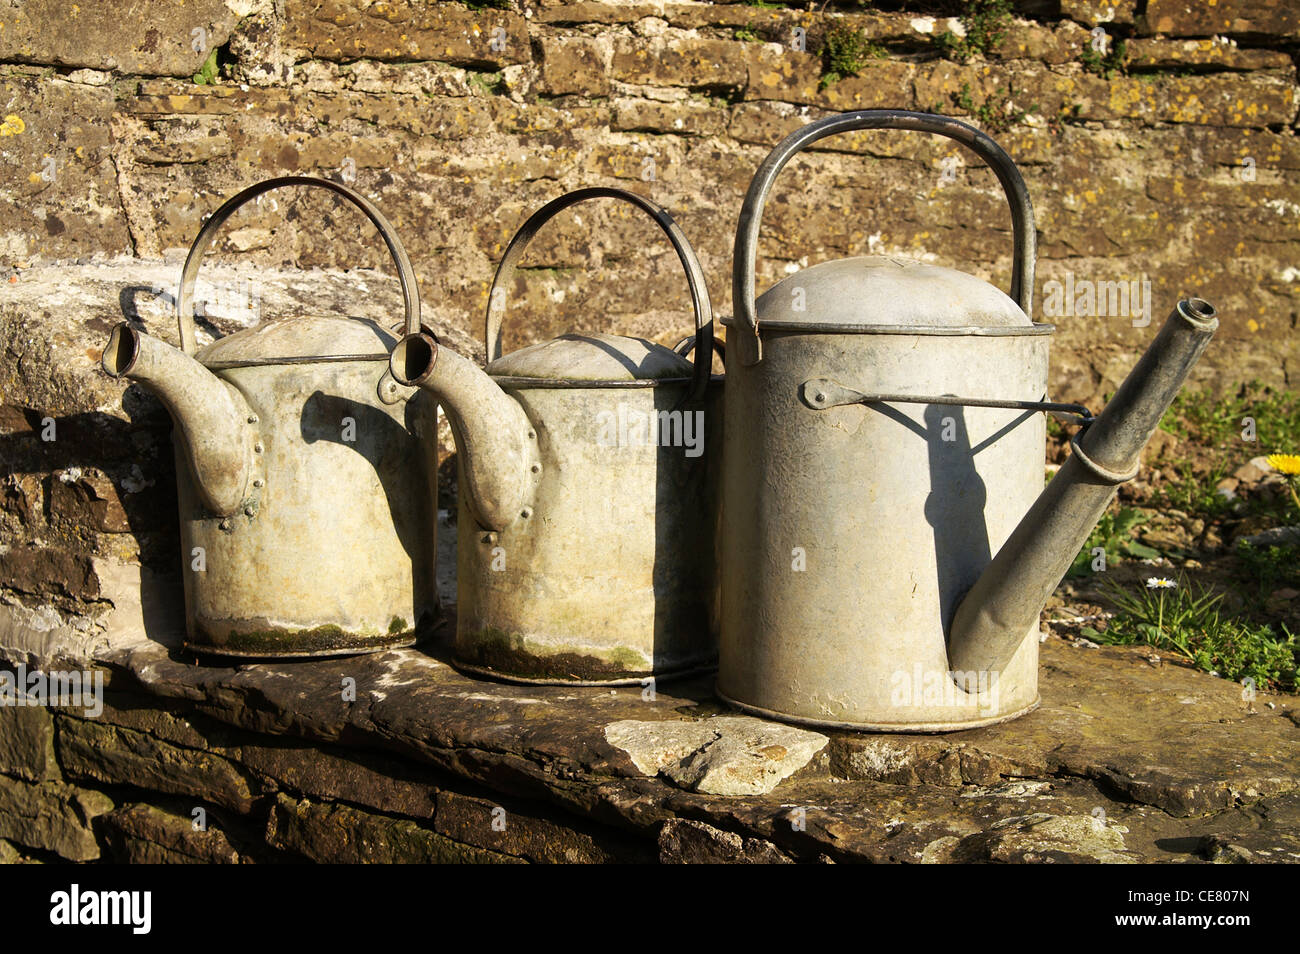 Three Watering Cans - Stock Image